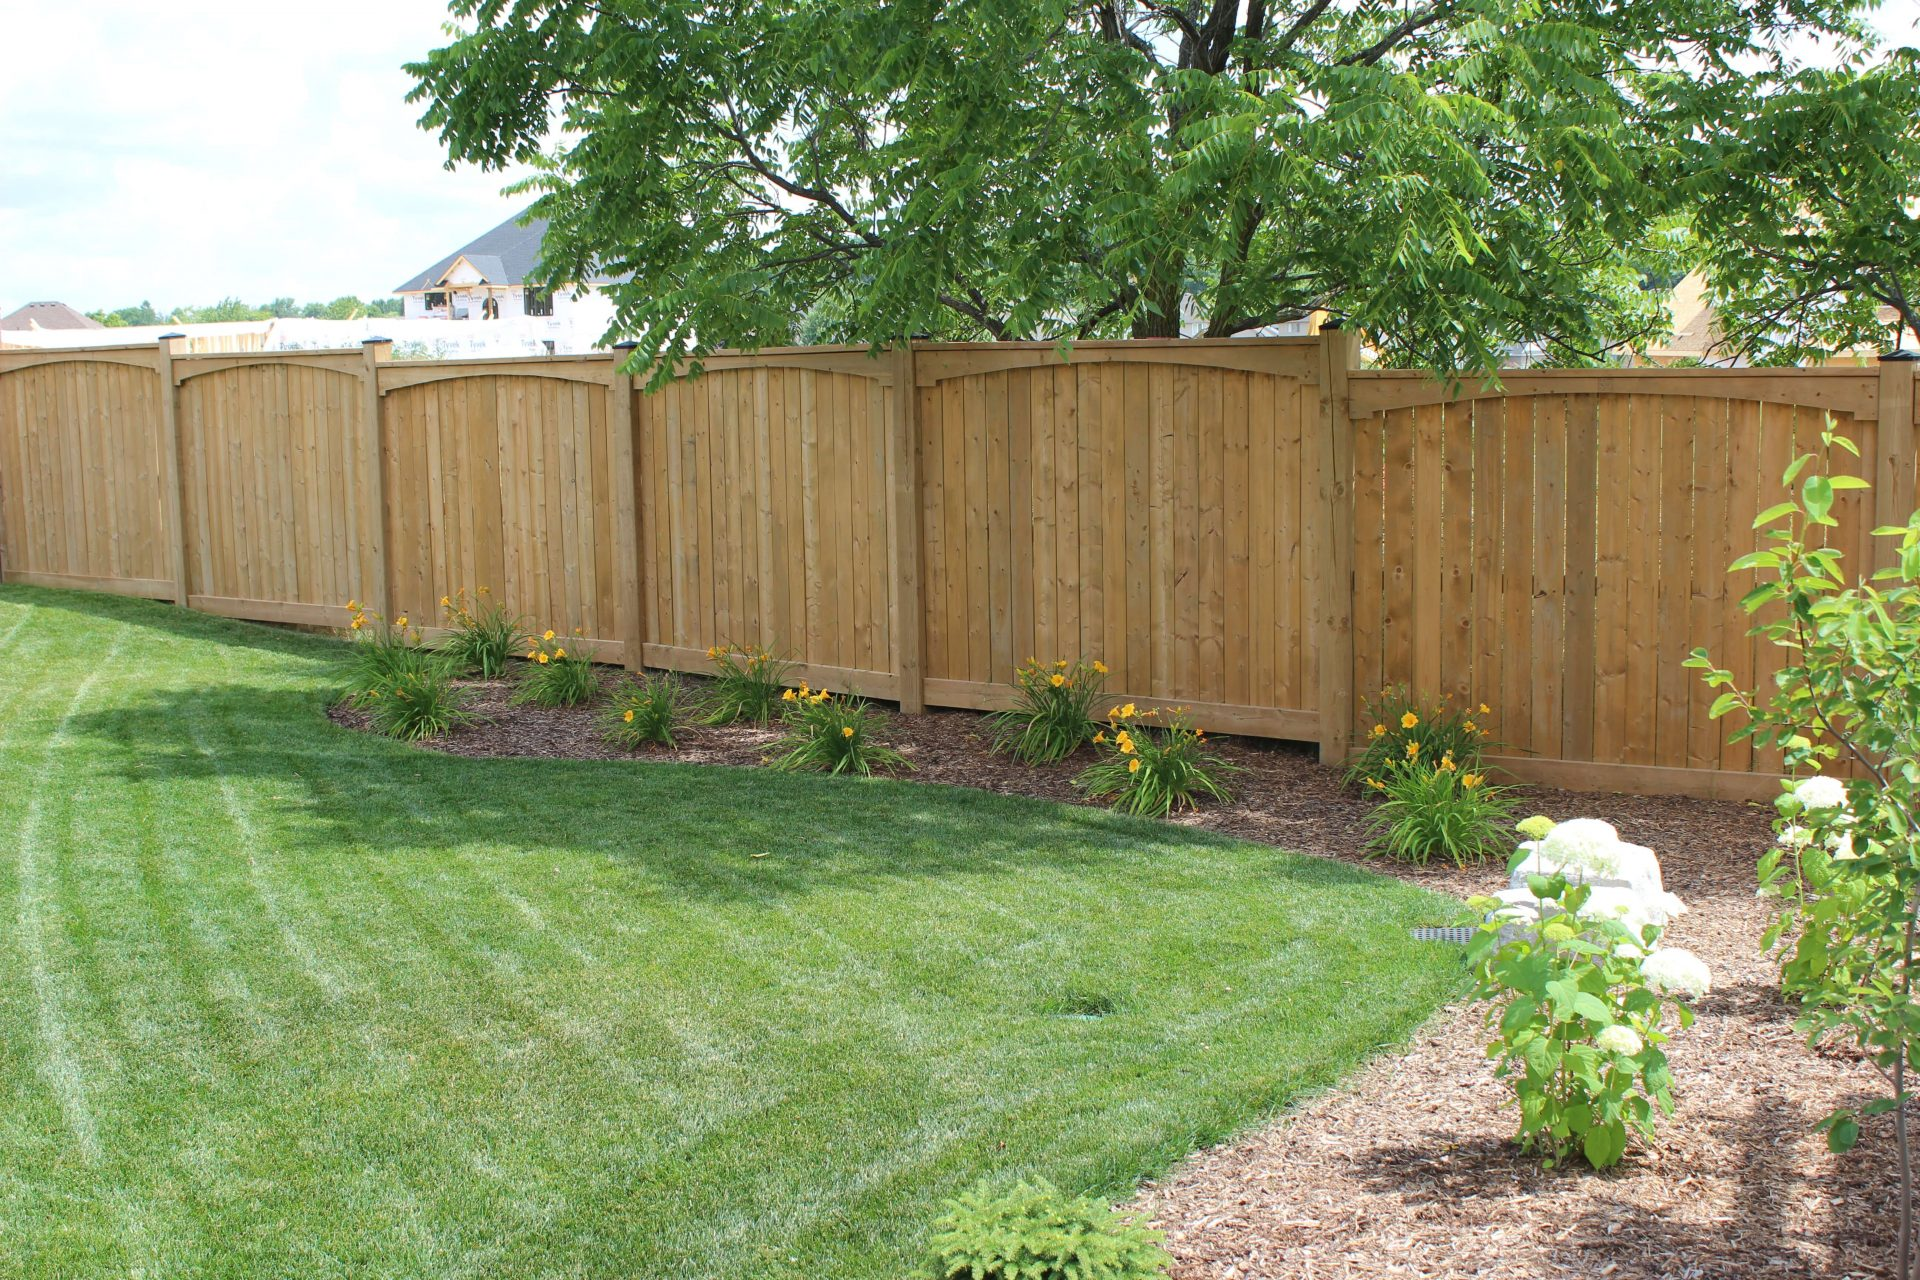 Wooden fence lining backyard